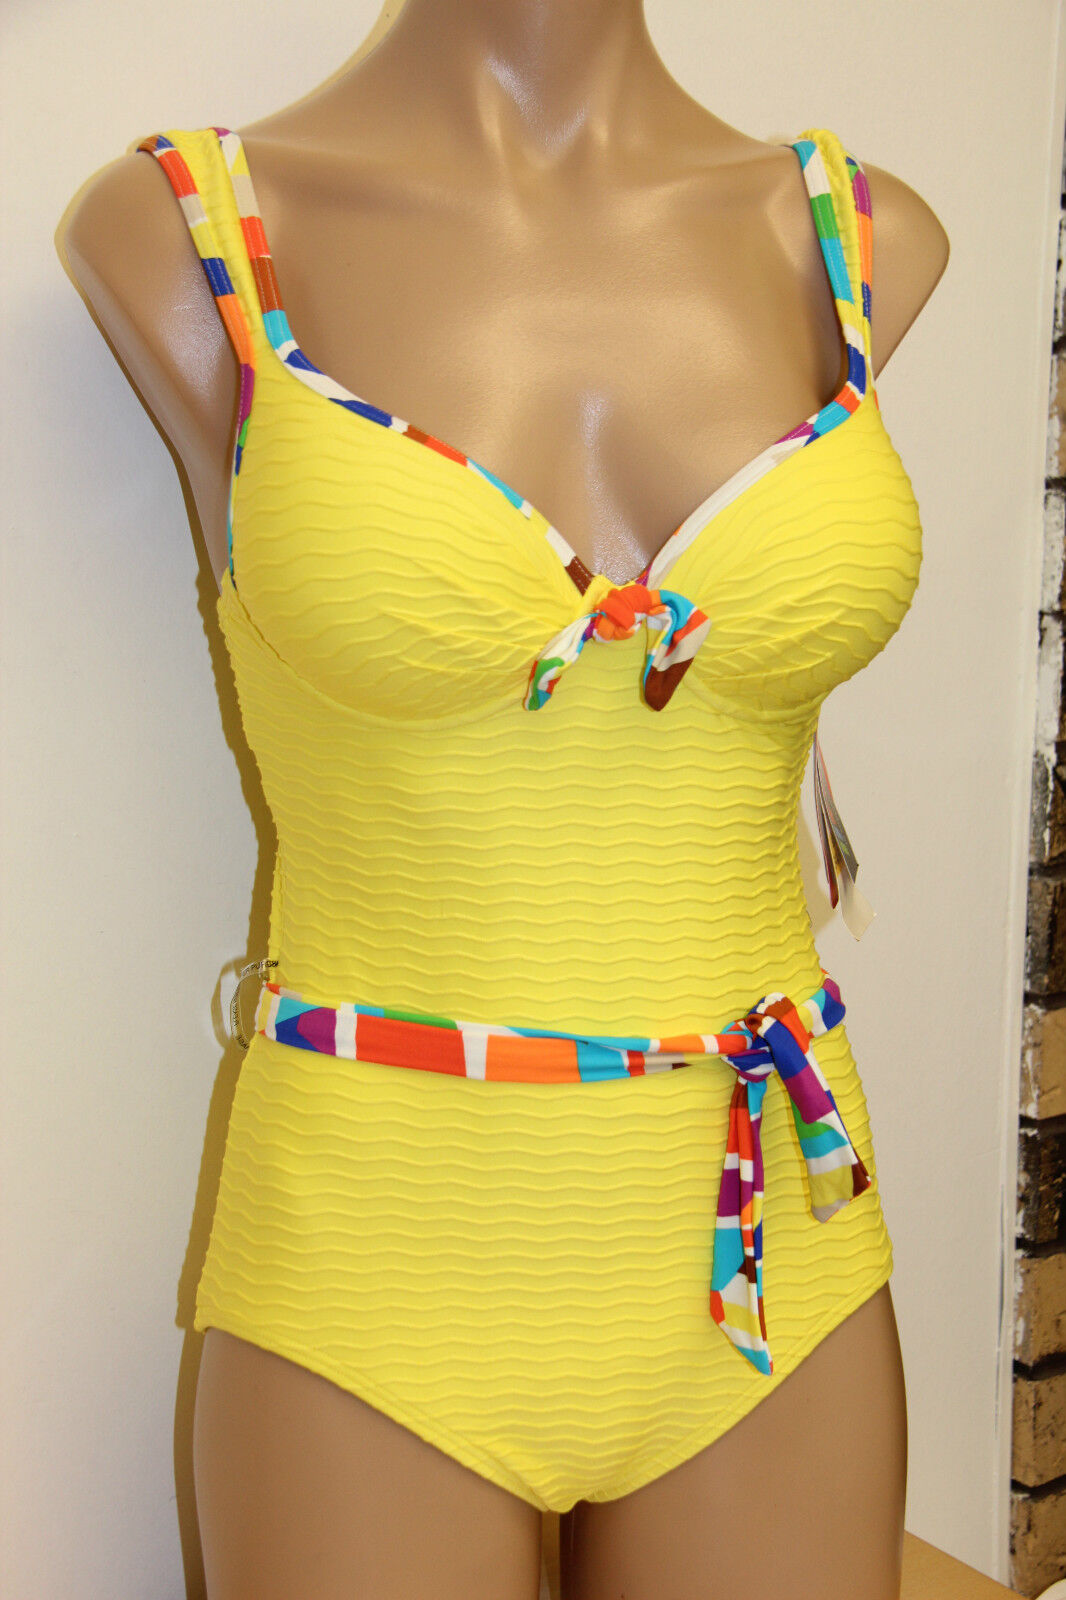 NWT Coco Rave Swimsuit 1 one pc Sz M 34A B Push Up Yellow